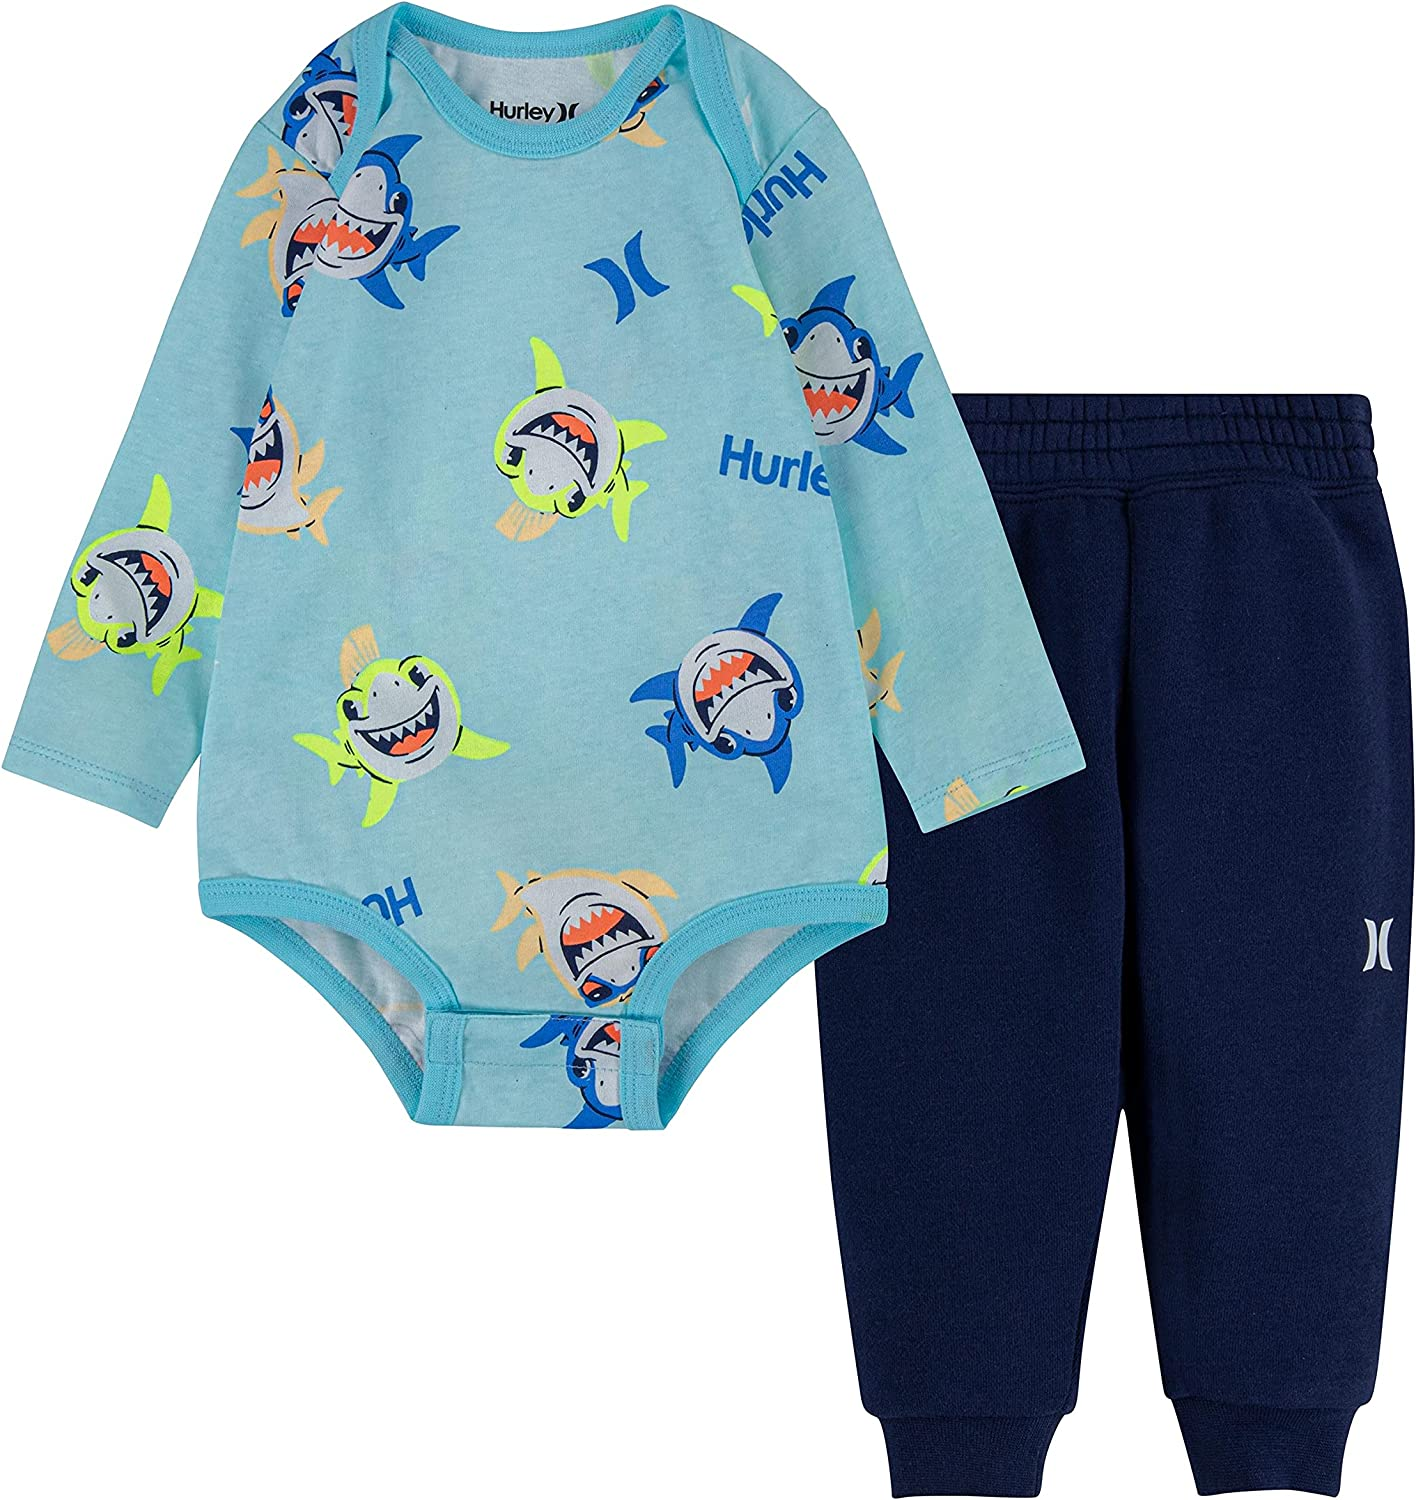 Hurley baby-boys Long Sleeve Bodysuit and Jogger Pants 2-piece Outfit Set